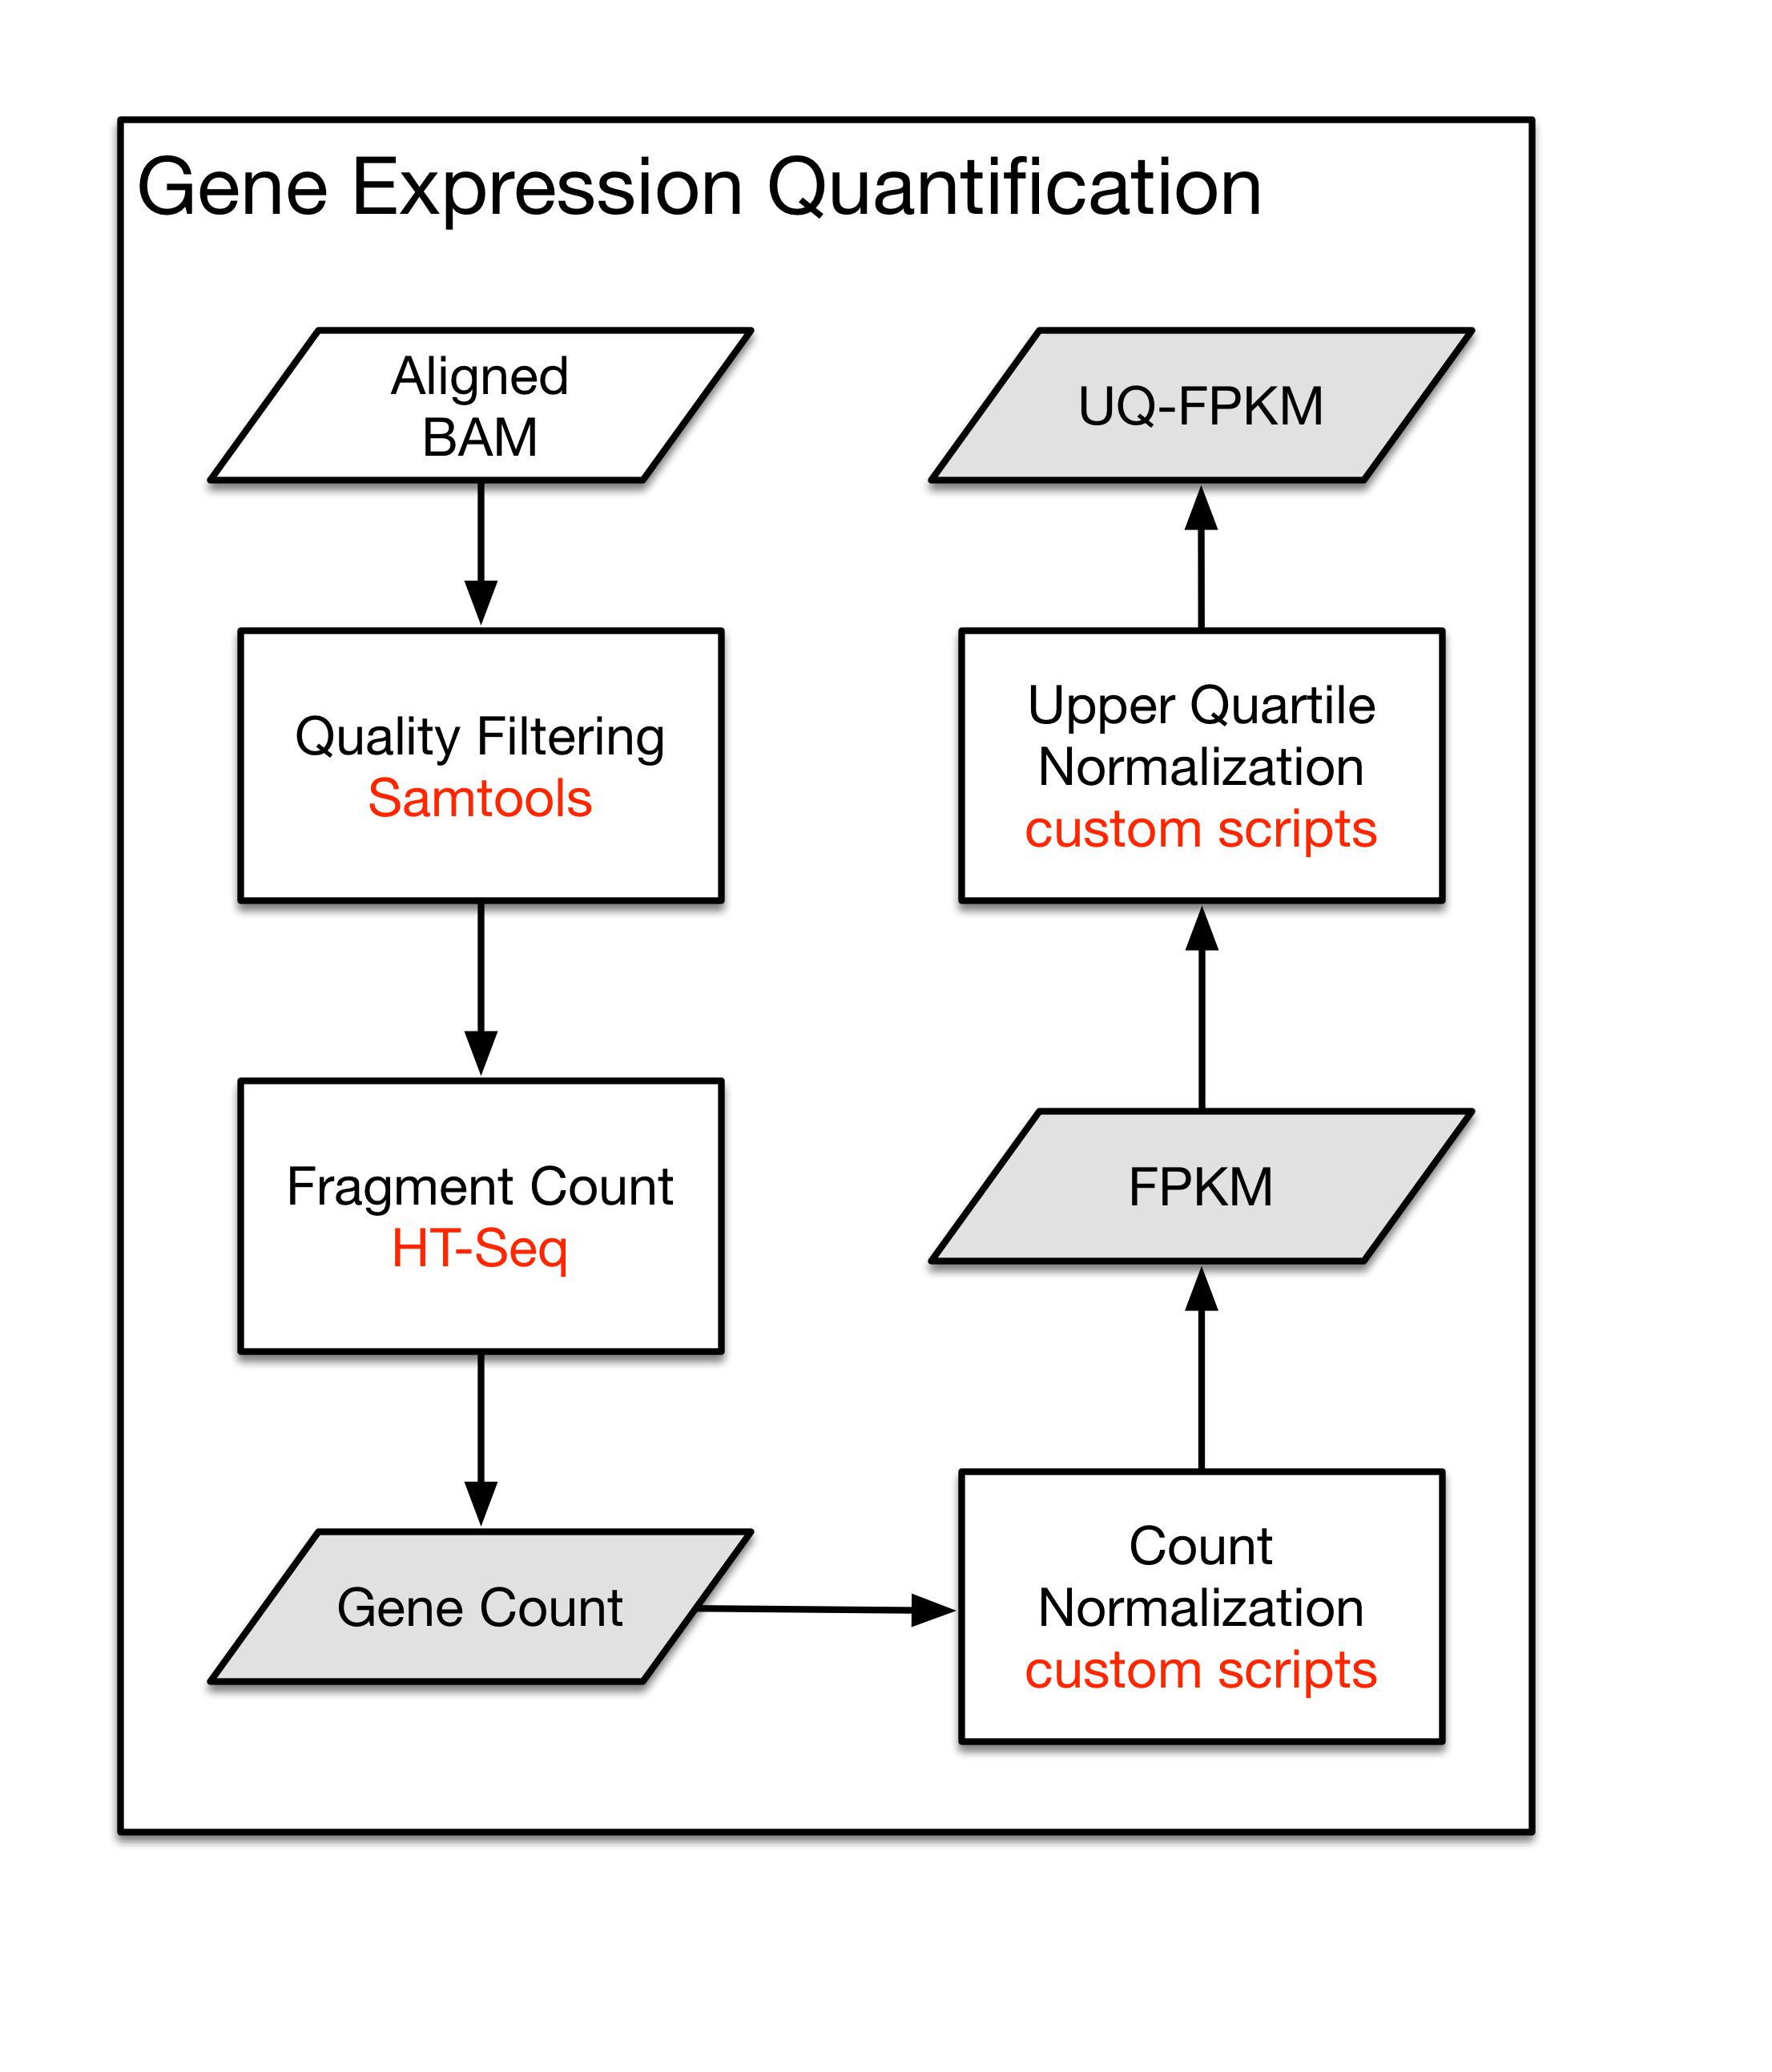 thumbnail image Gene Expression Quantification Pipeline